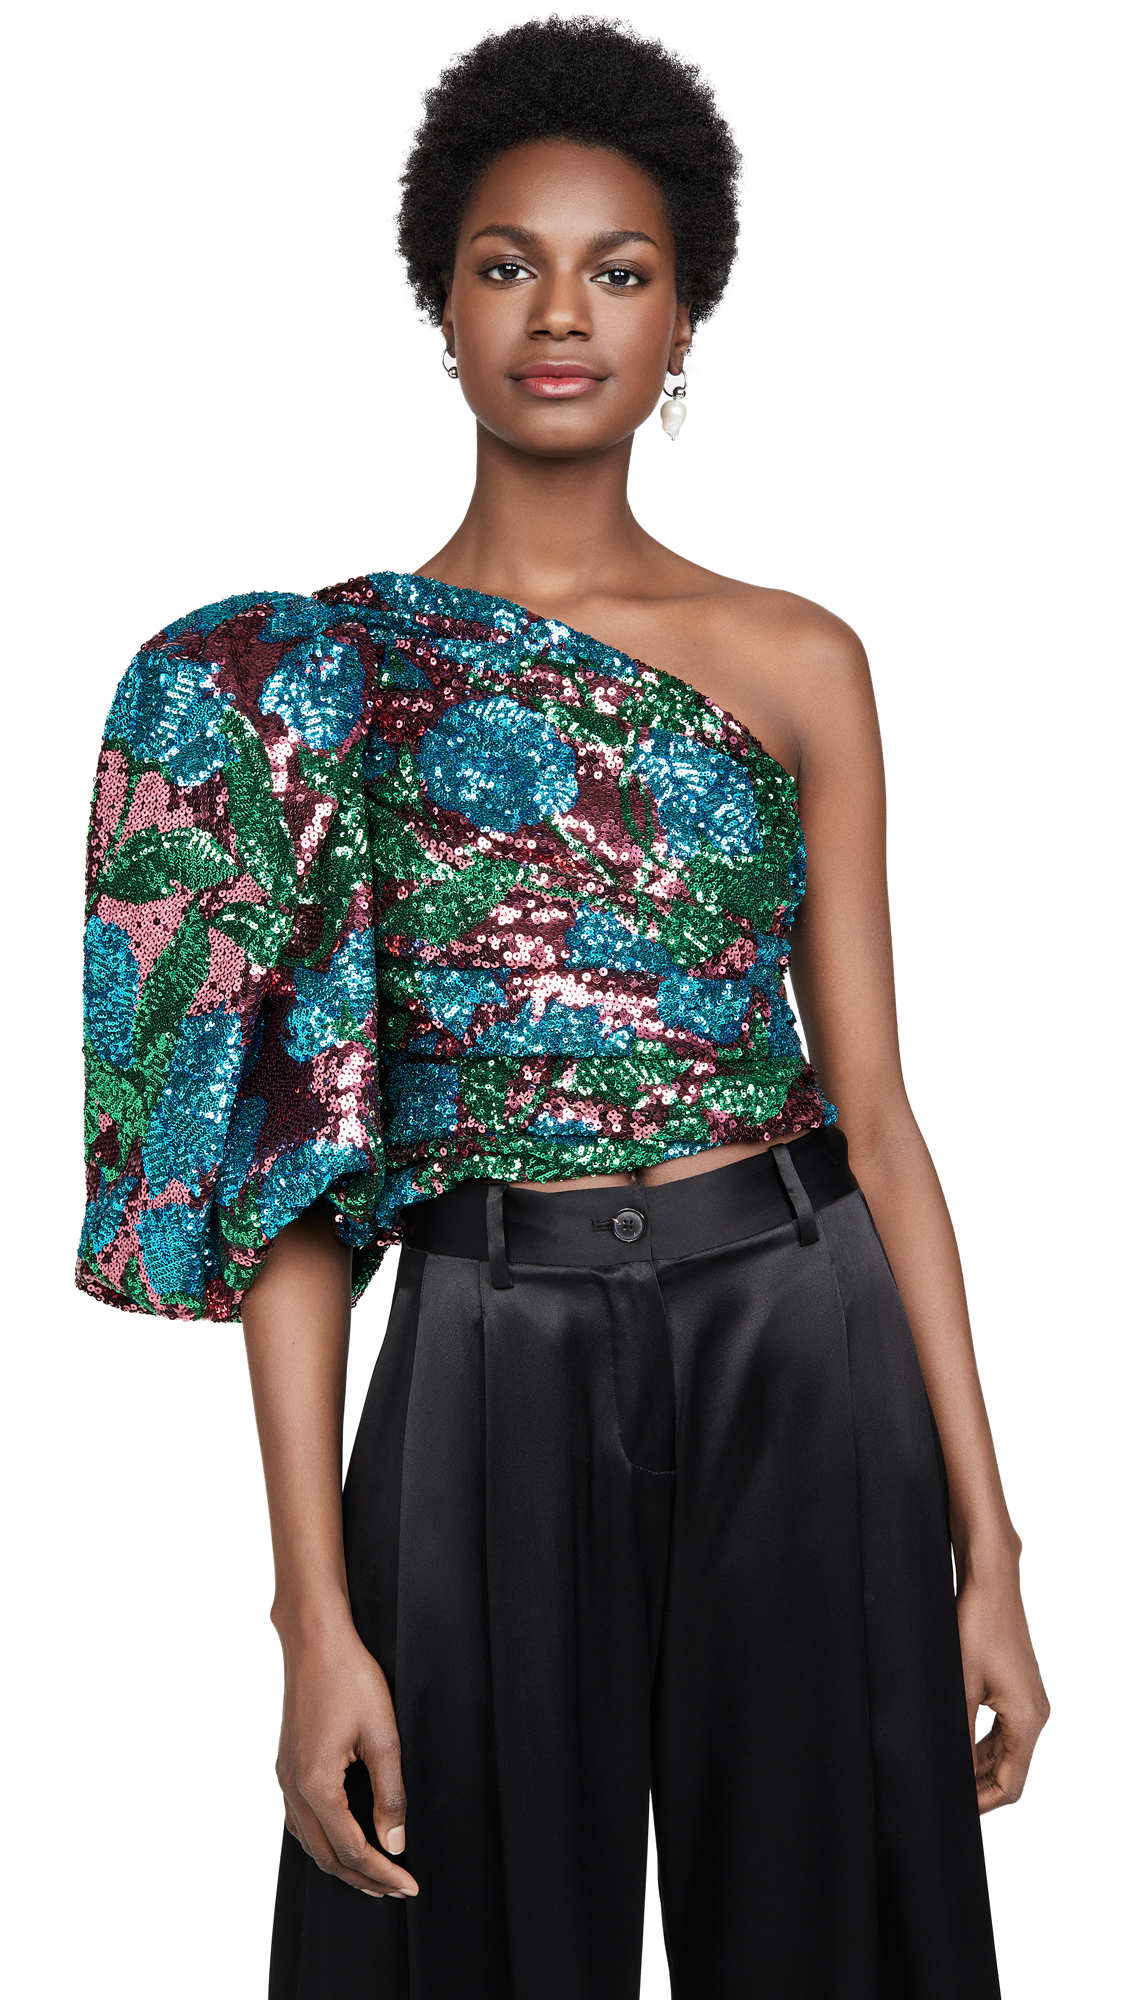 Giuseppe di Morabito One Shoulder Sequin Top - 30% Off Sale